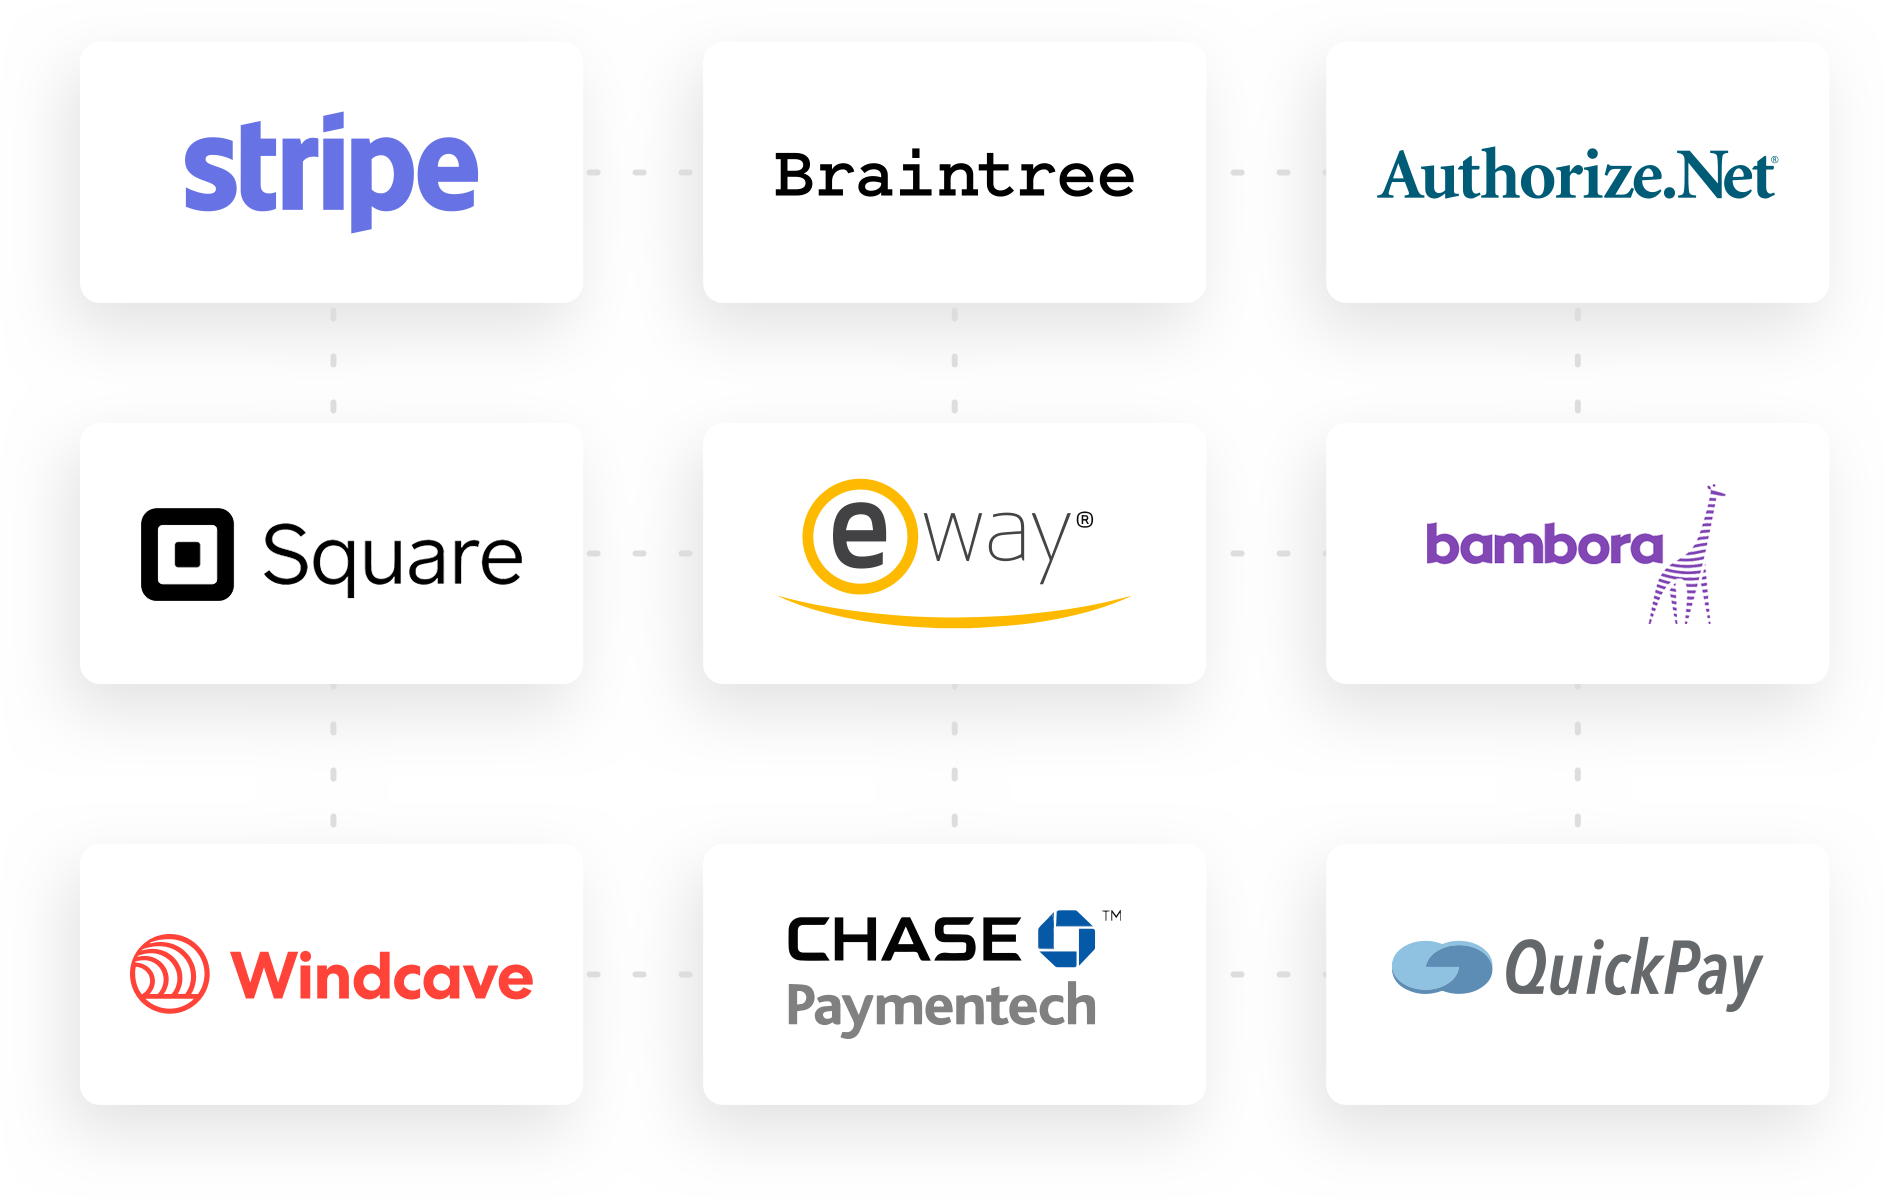 Graphic Of Chargify's Alternative Payment Gateways Such As Stripe, BrainTree, Authorize.Net, Square, Eway, Bambora, Payment Express, Chase Paymentech. Chargify the #1 B2B SaaS Billing Solutions Website.